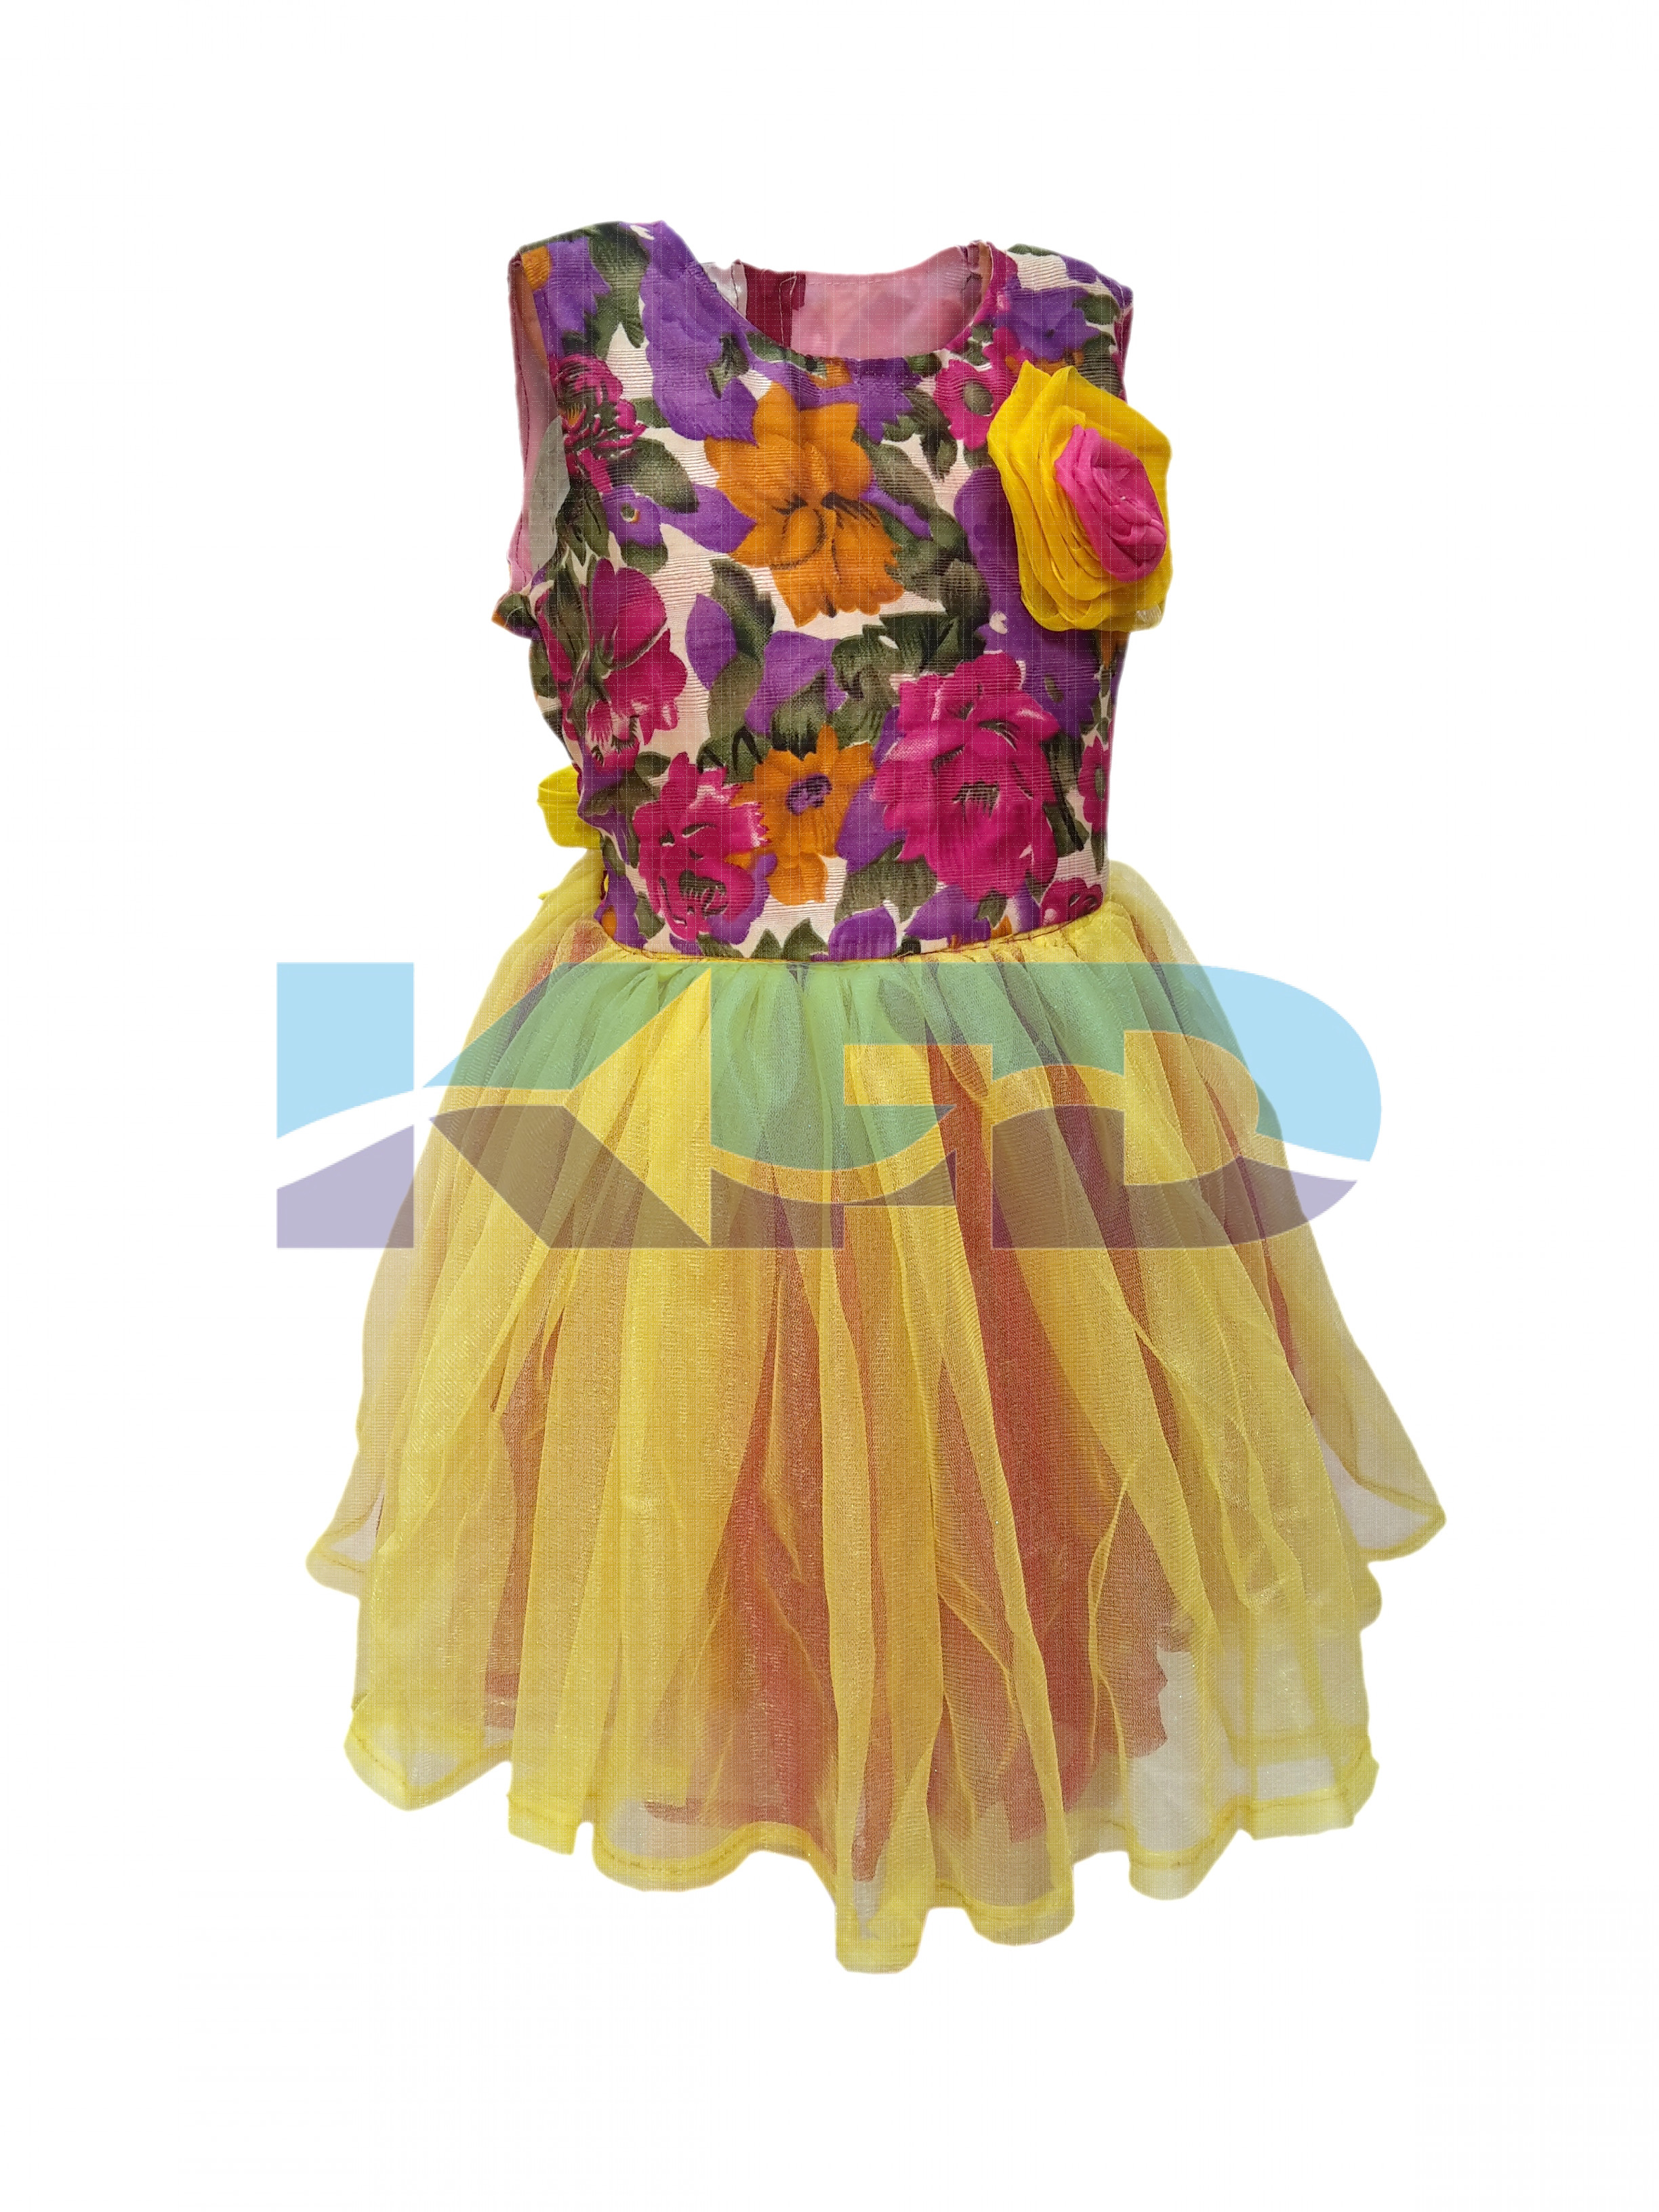 Flower Frock fancy dress for kids,Western Costume for School Annual function/Theme Party/Competition/Stage Shows/Birthday Party Dress